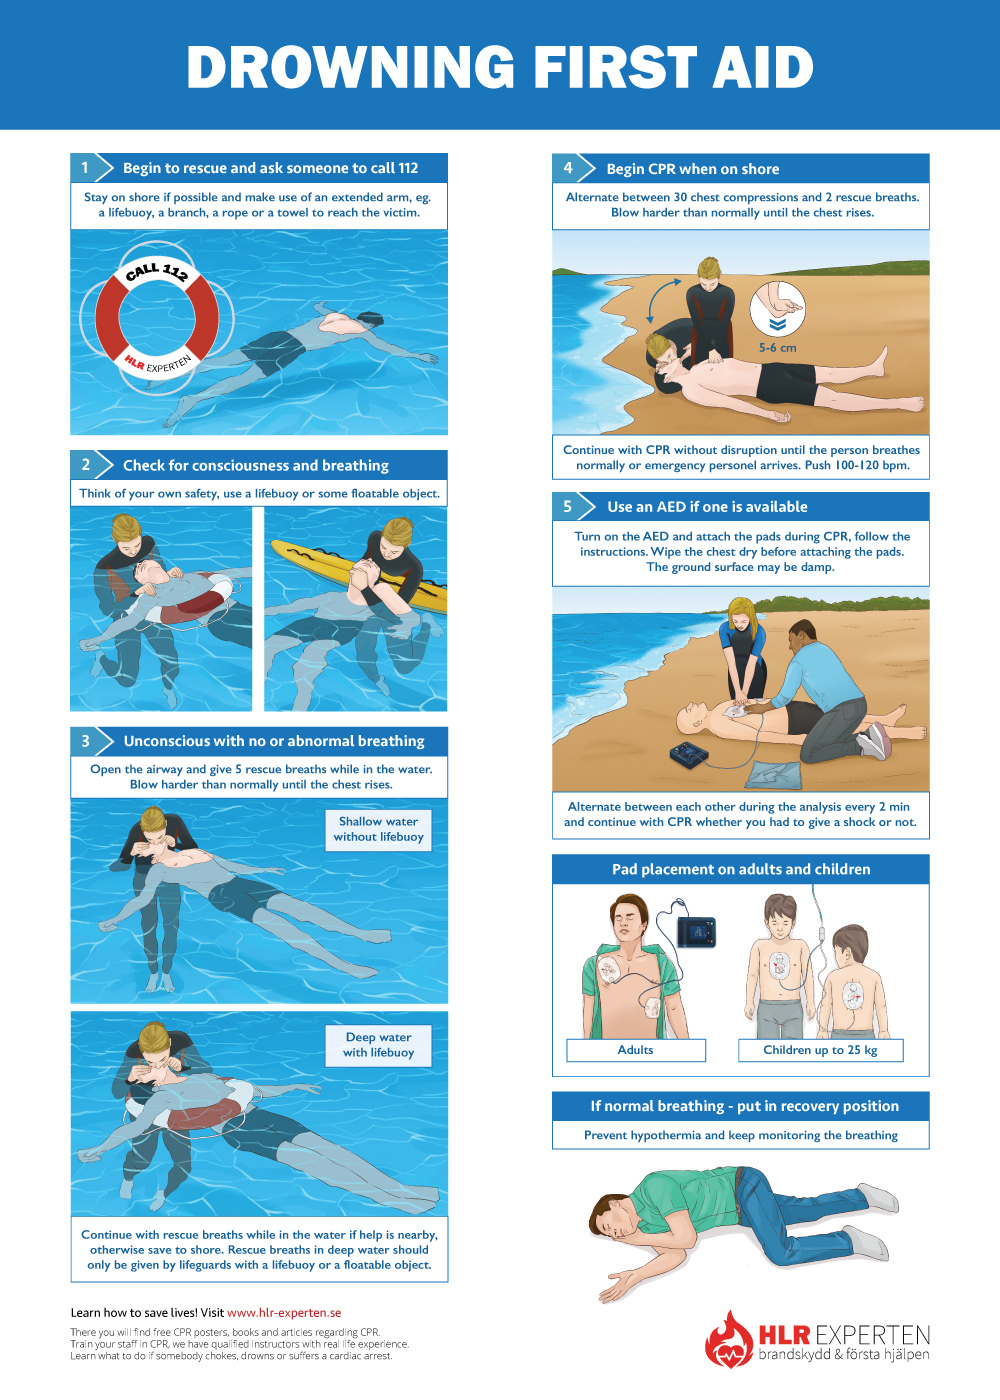 CPR Steps Poster for drowning first aid. CPR guidelines. How to do CPR?